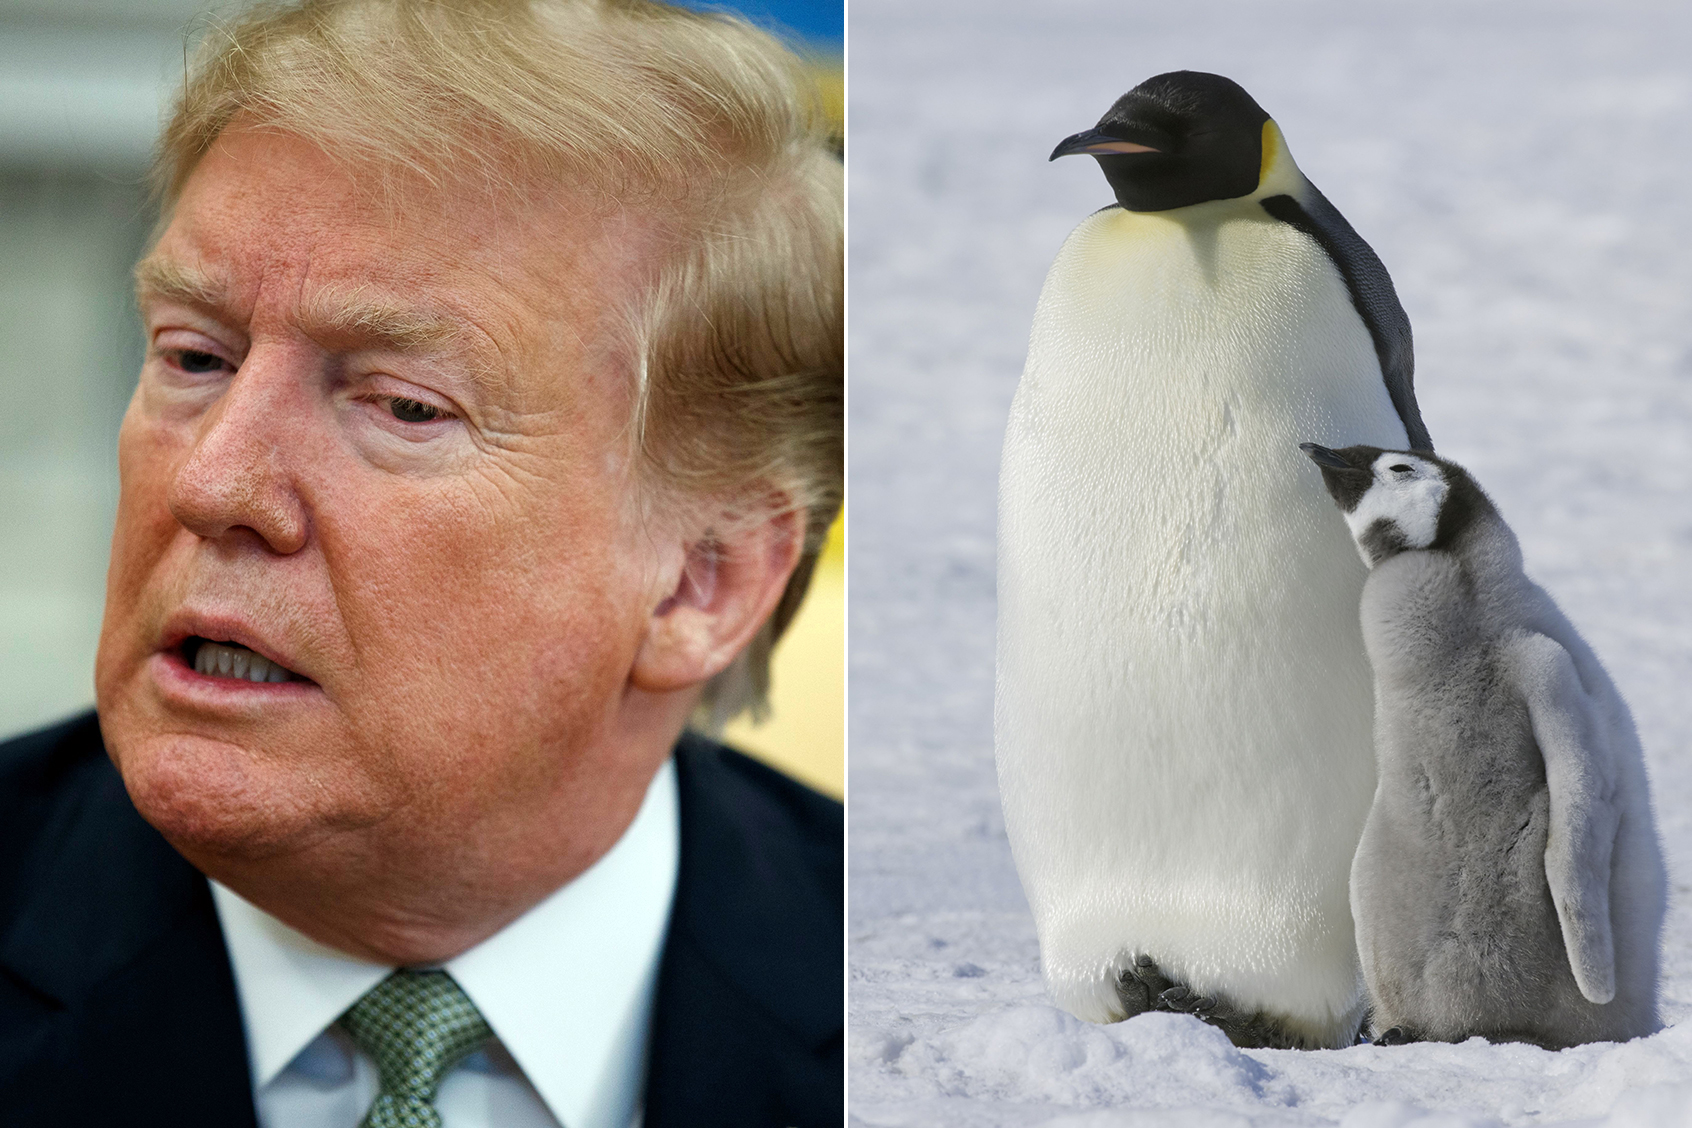 Journey to Antarctica: What Scientists Think of Trump's Latest Climate Tweet